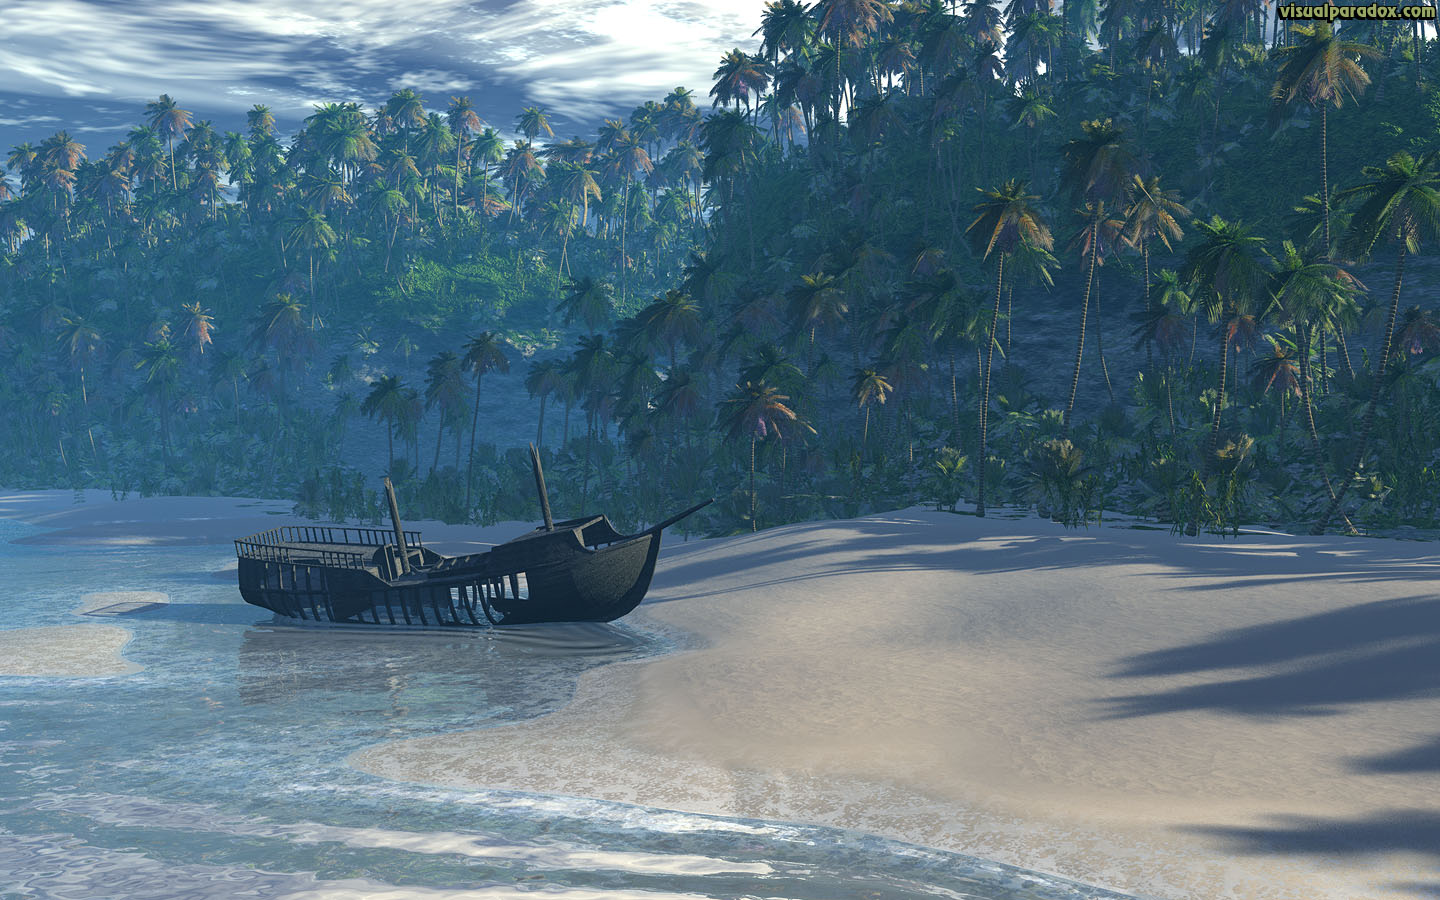 Free 3D Wallpaper 'Shipwreck Beach' 1440x900 wide-